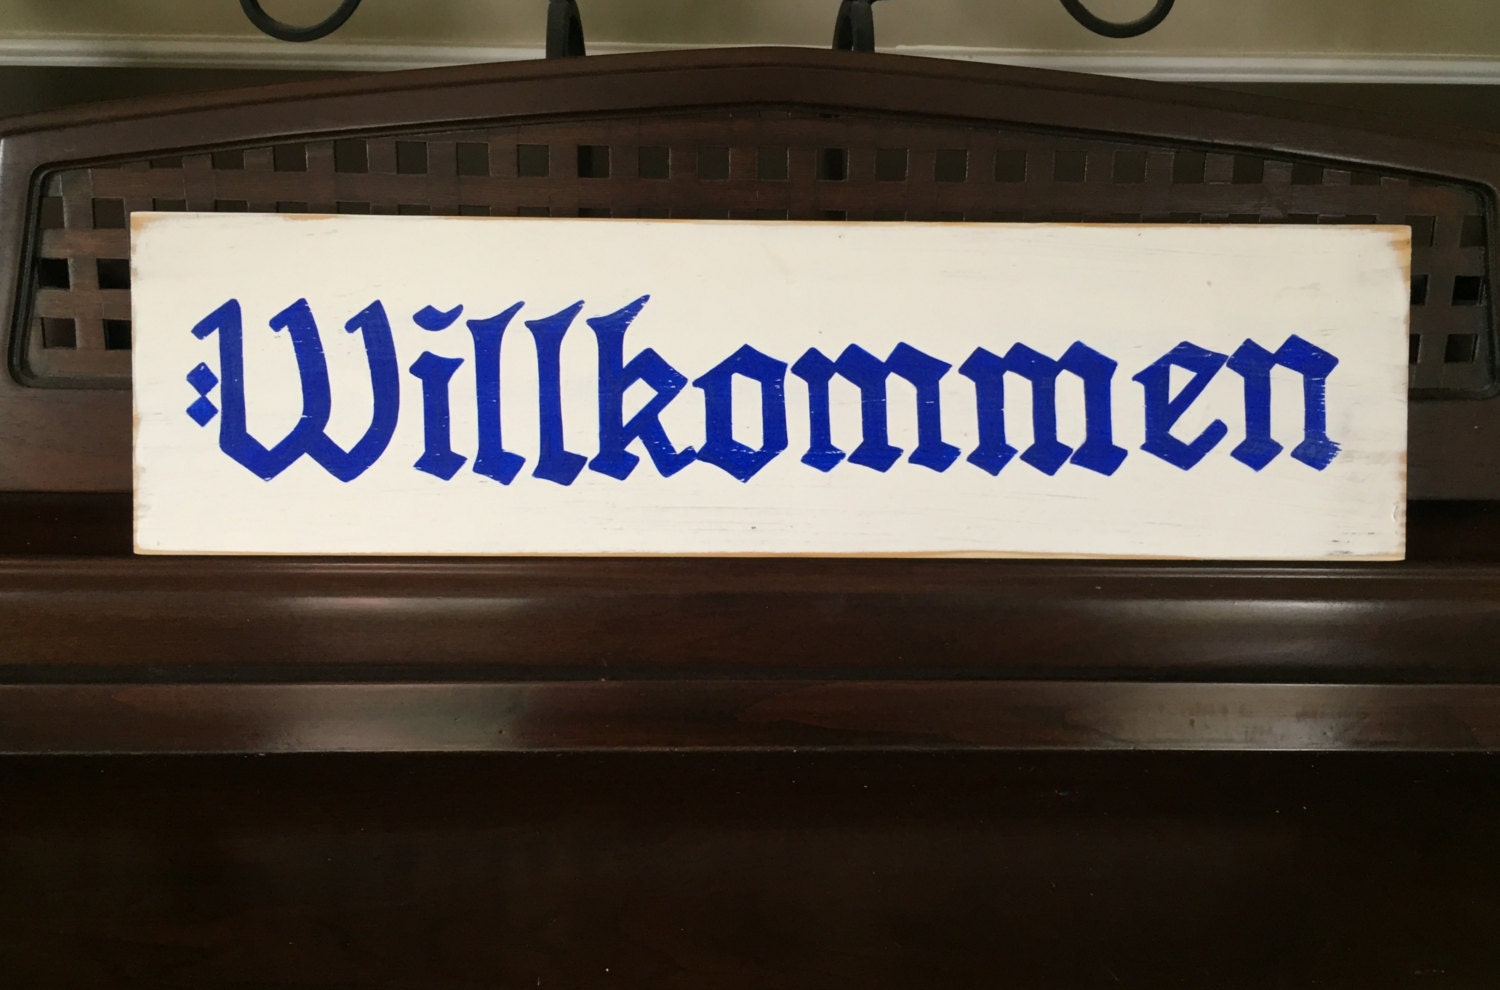 29910 together with Willkommen Wel e Sign Plaque Wooden likewise Tact Is For People Who Arent Clever Enough To Be Sarcastic also One Dozen 2 Inch Dahlia Sola Wood Flowers moreover Ein Prosit Cheers Toast To You Sign. on sage green wood sign